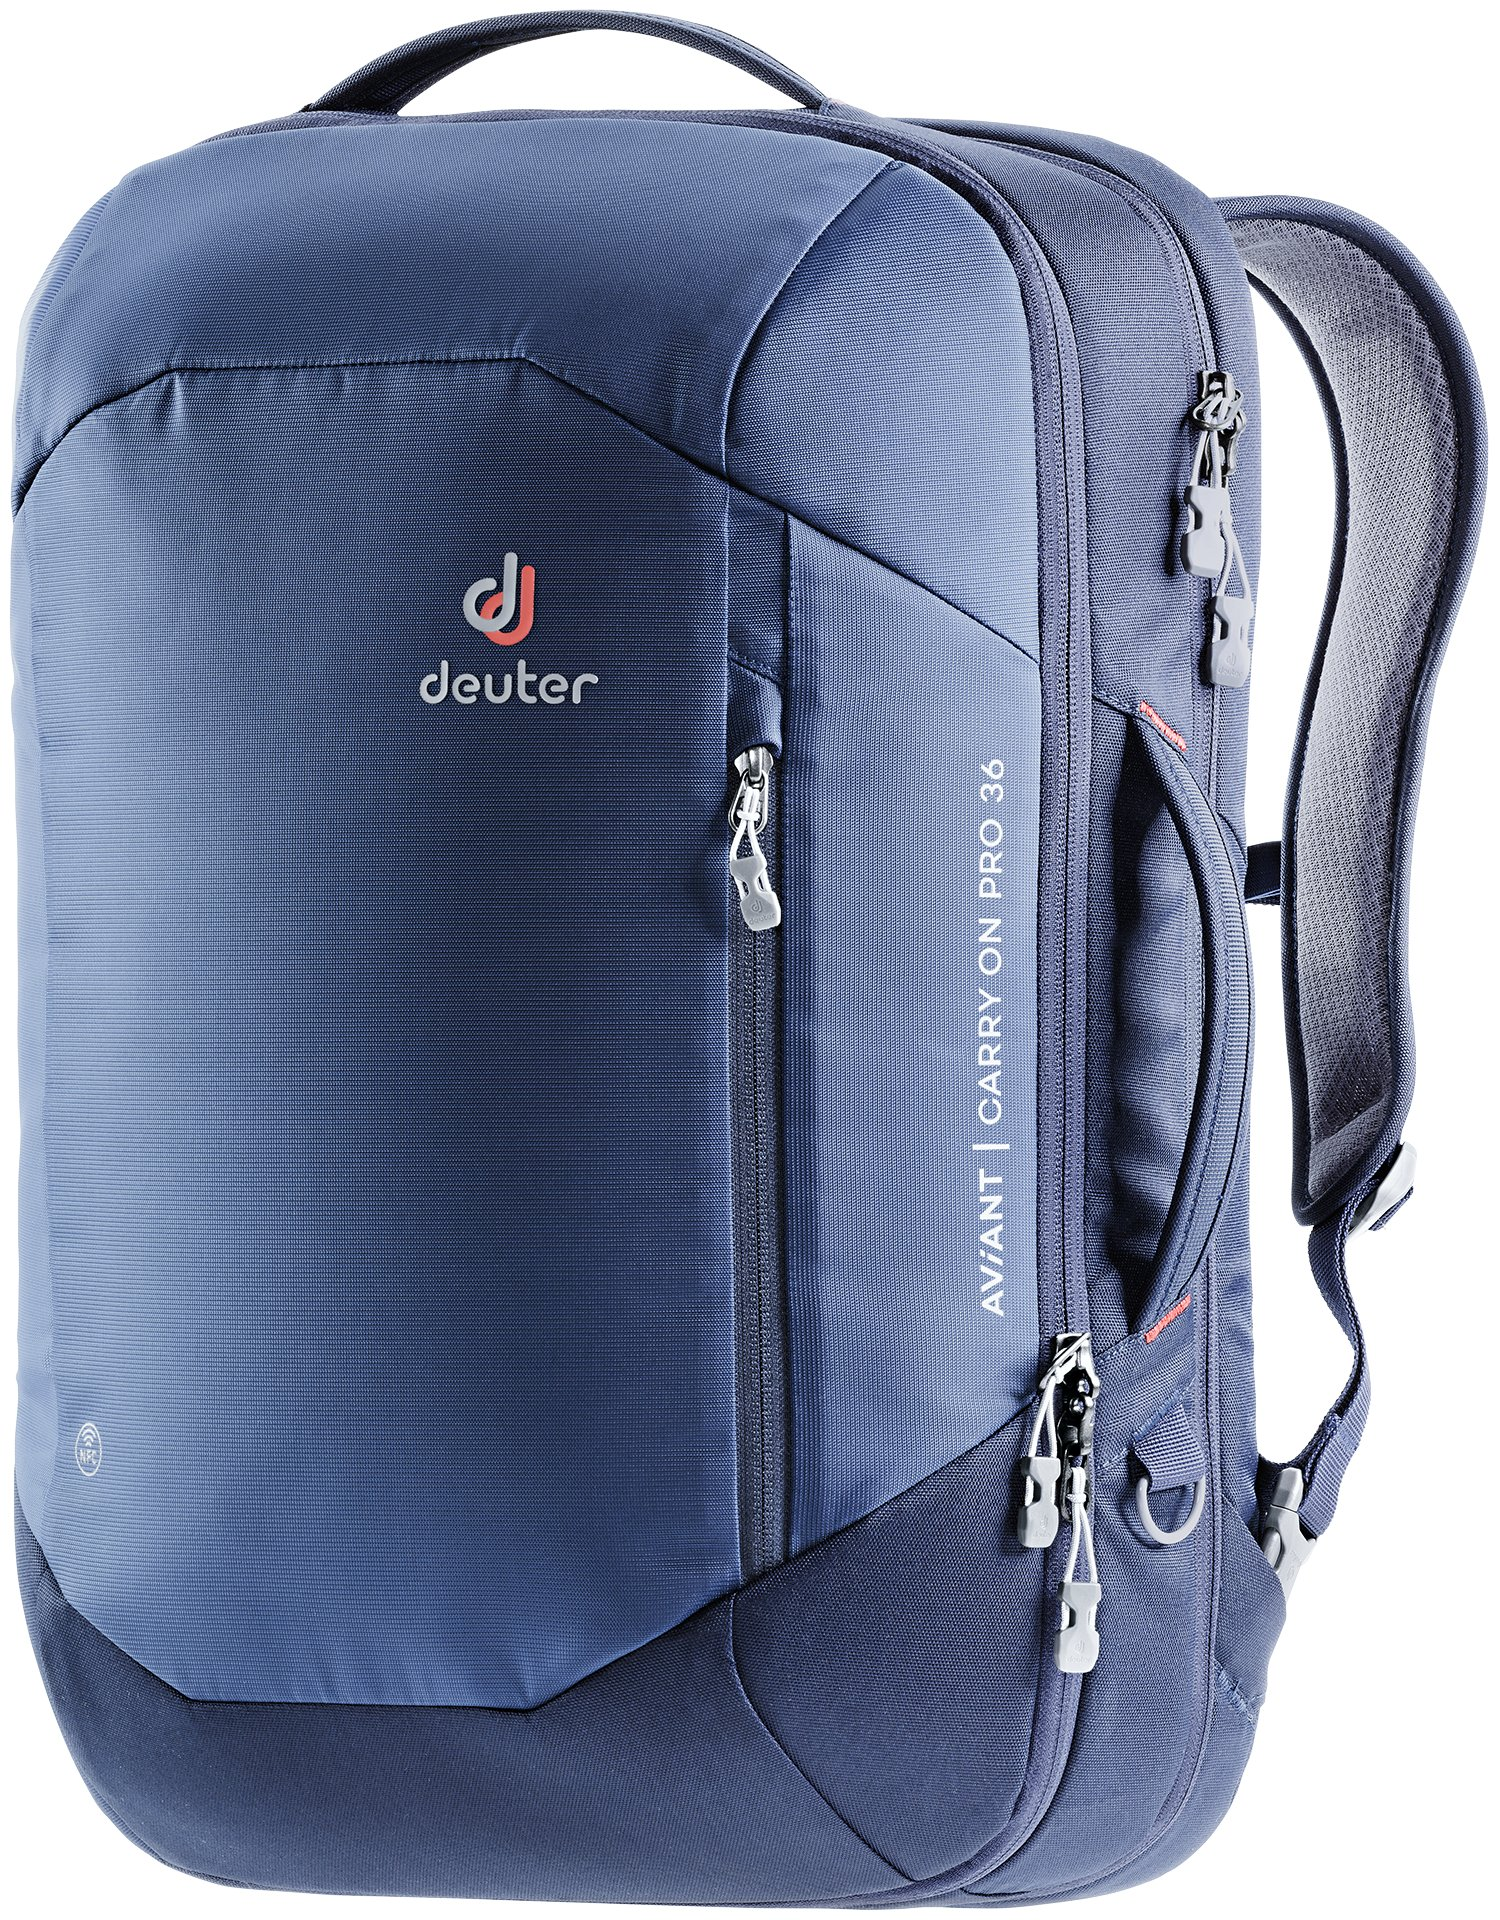 Deuter - AViANT Carry On Pro 36, Reiserucksack